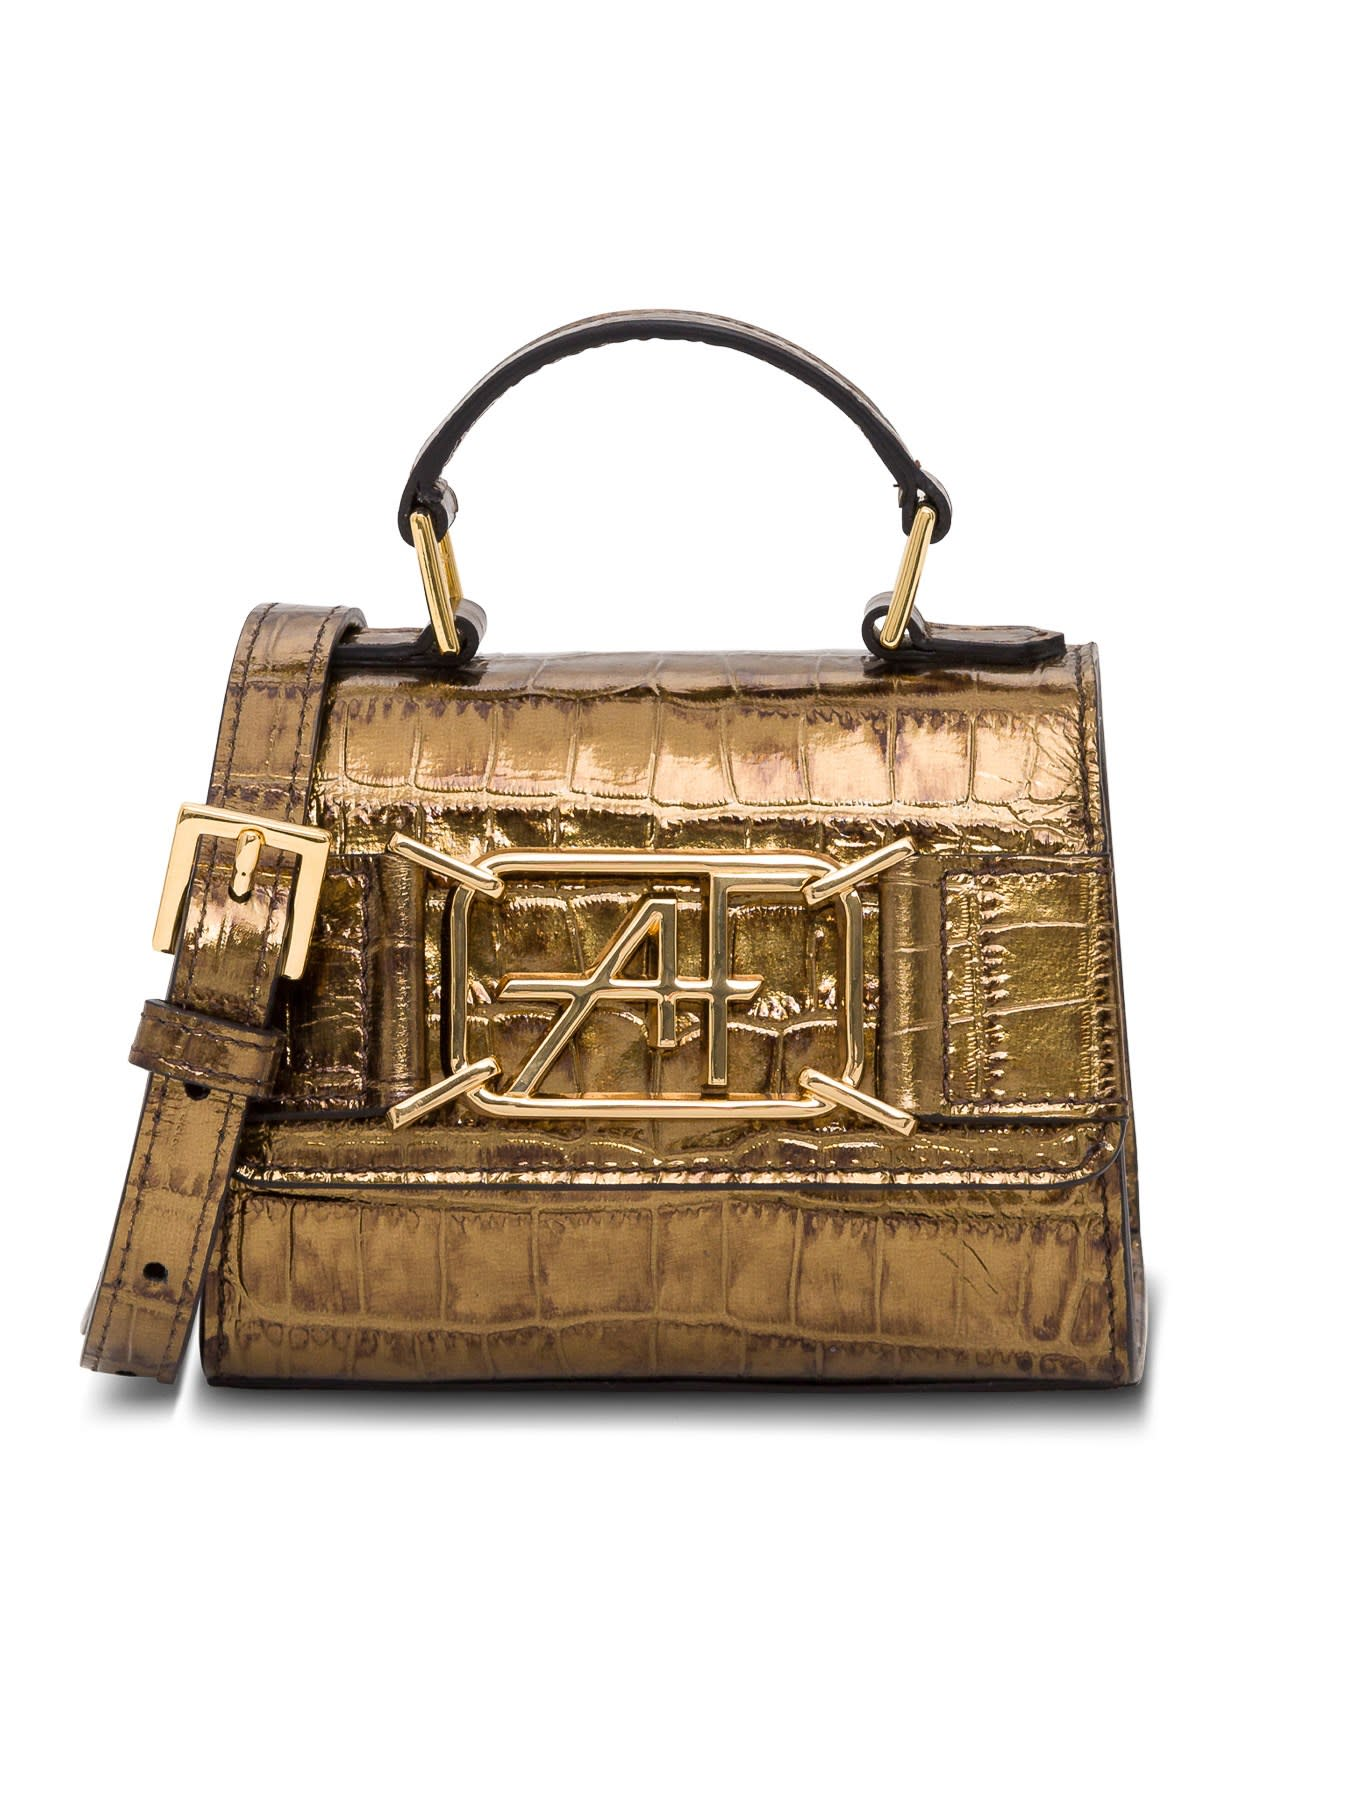 Alberta Ferretti MINI CROCODILE EMBOSSED LEATHER SHOULDER BAG